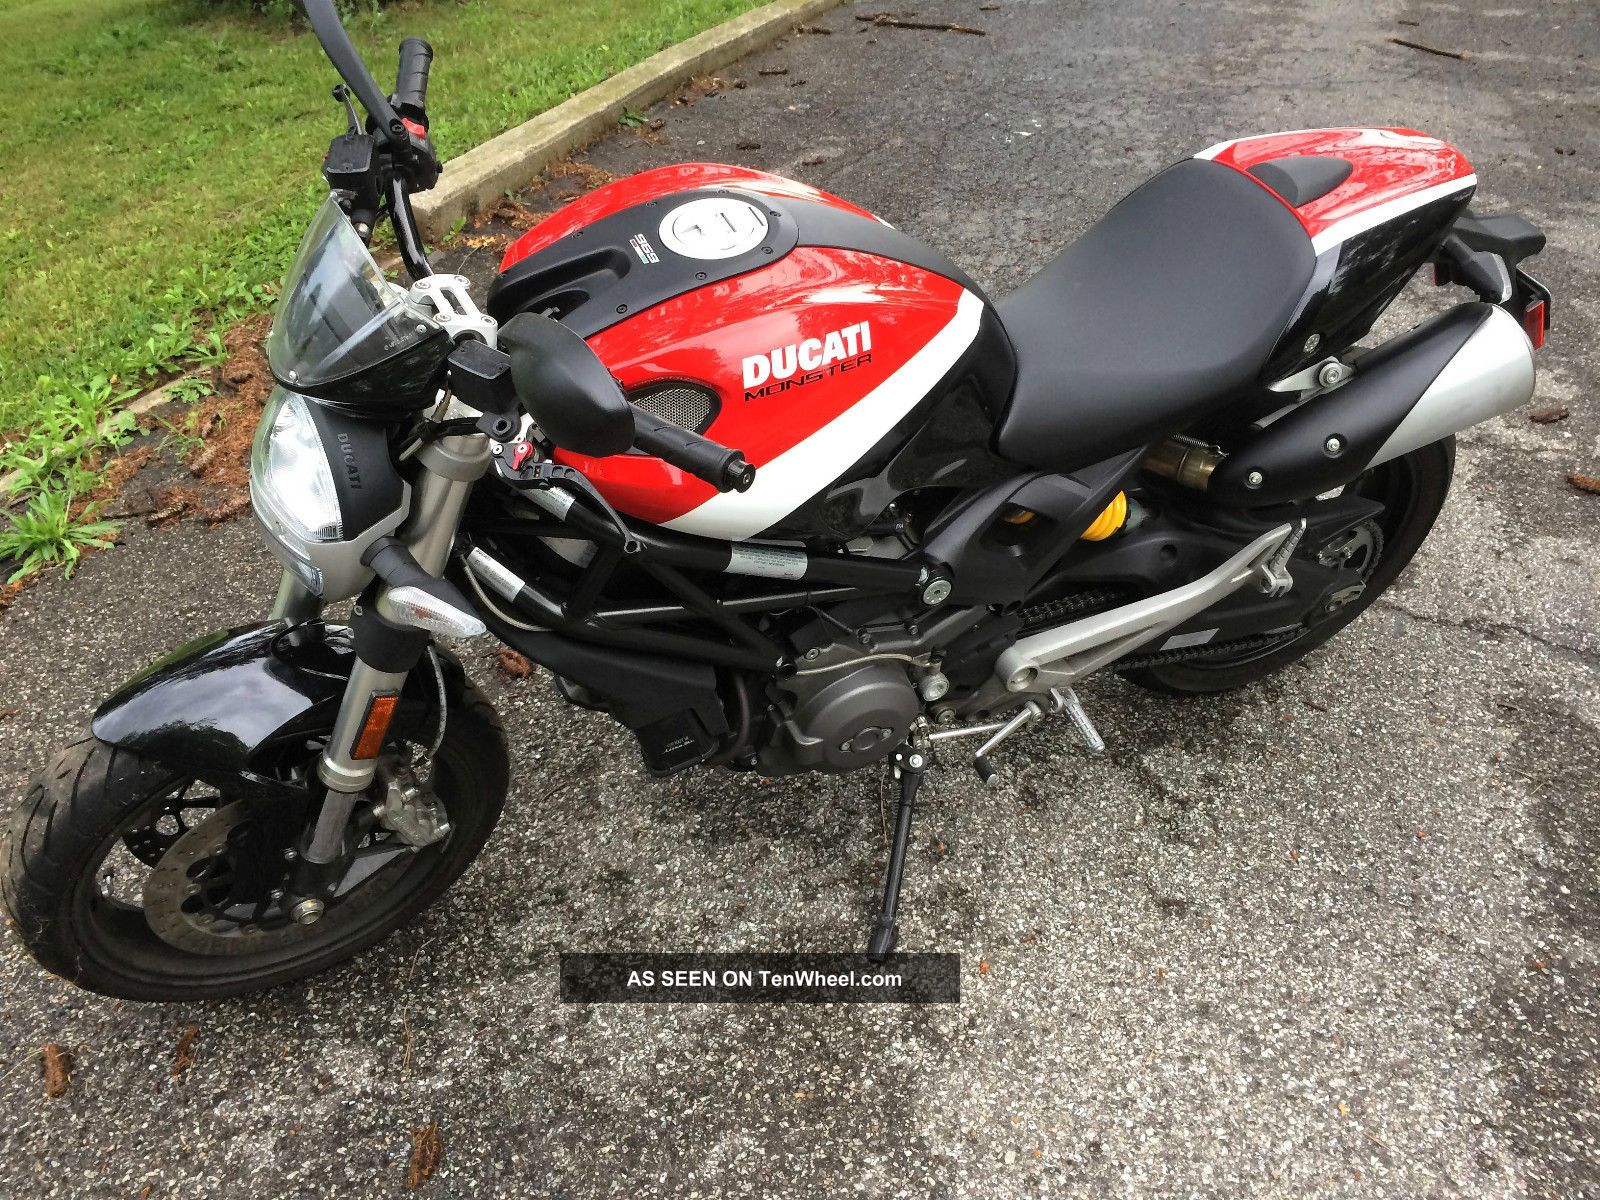 2010 Ducati Monster 696 M696 Corse Reduced Red White Black Ultra Monster photo